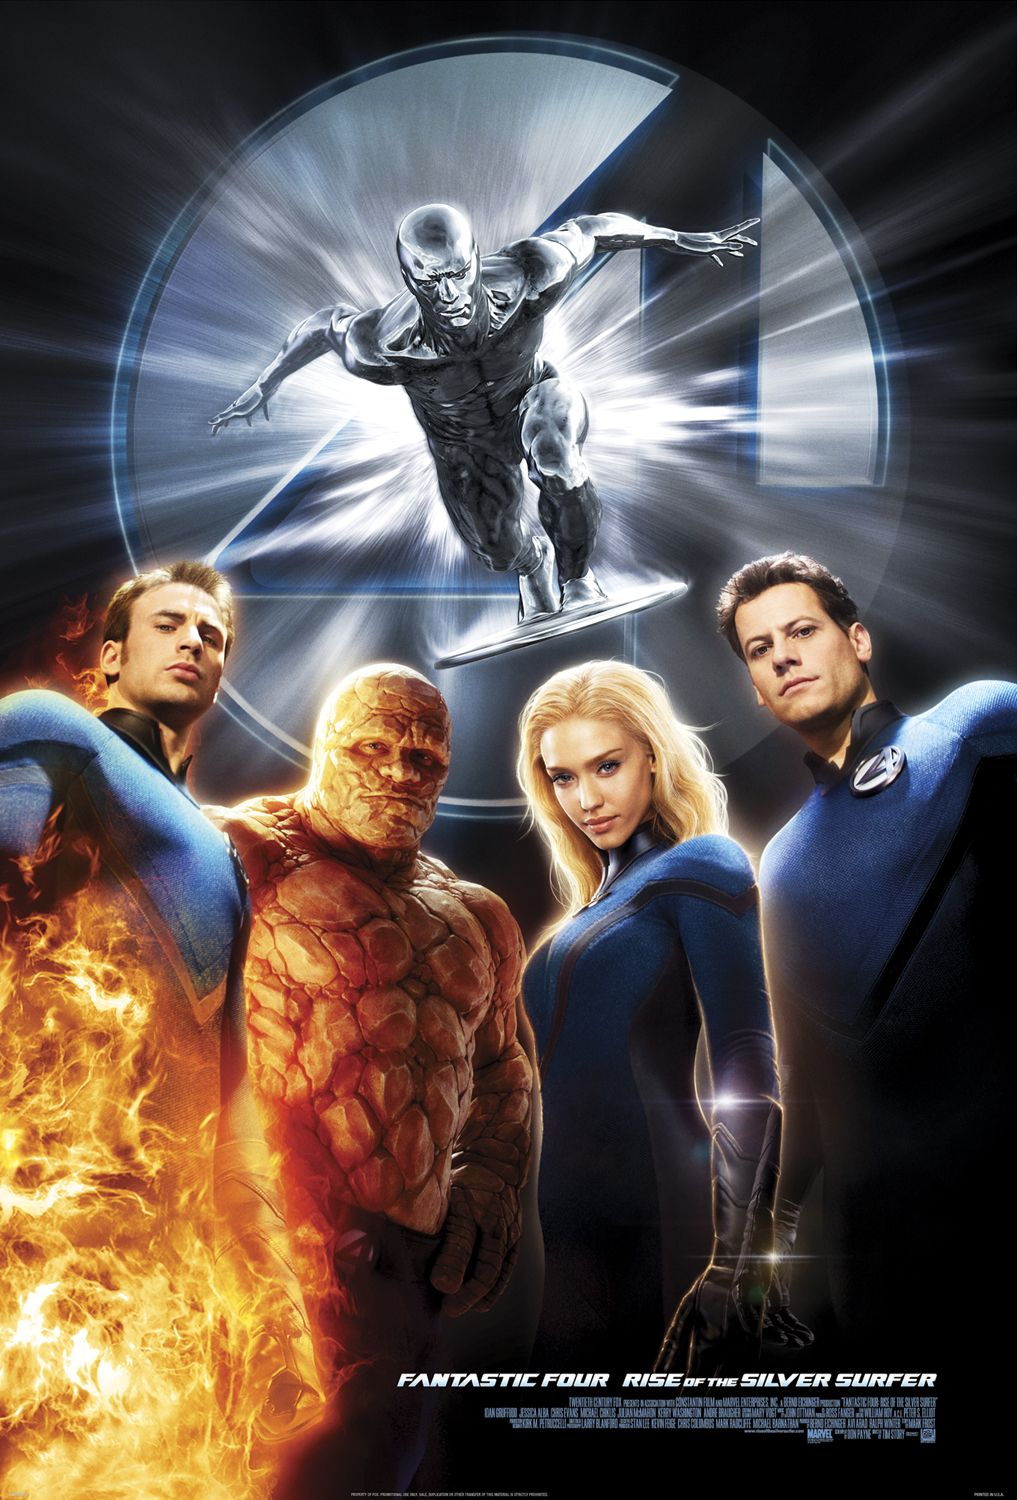 Fantastic Four Rise Of The Silver Surfer 2007 Silver Surfer Movie Silver Surfer Superhero Movies